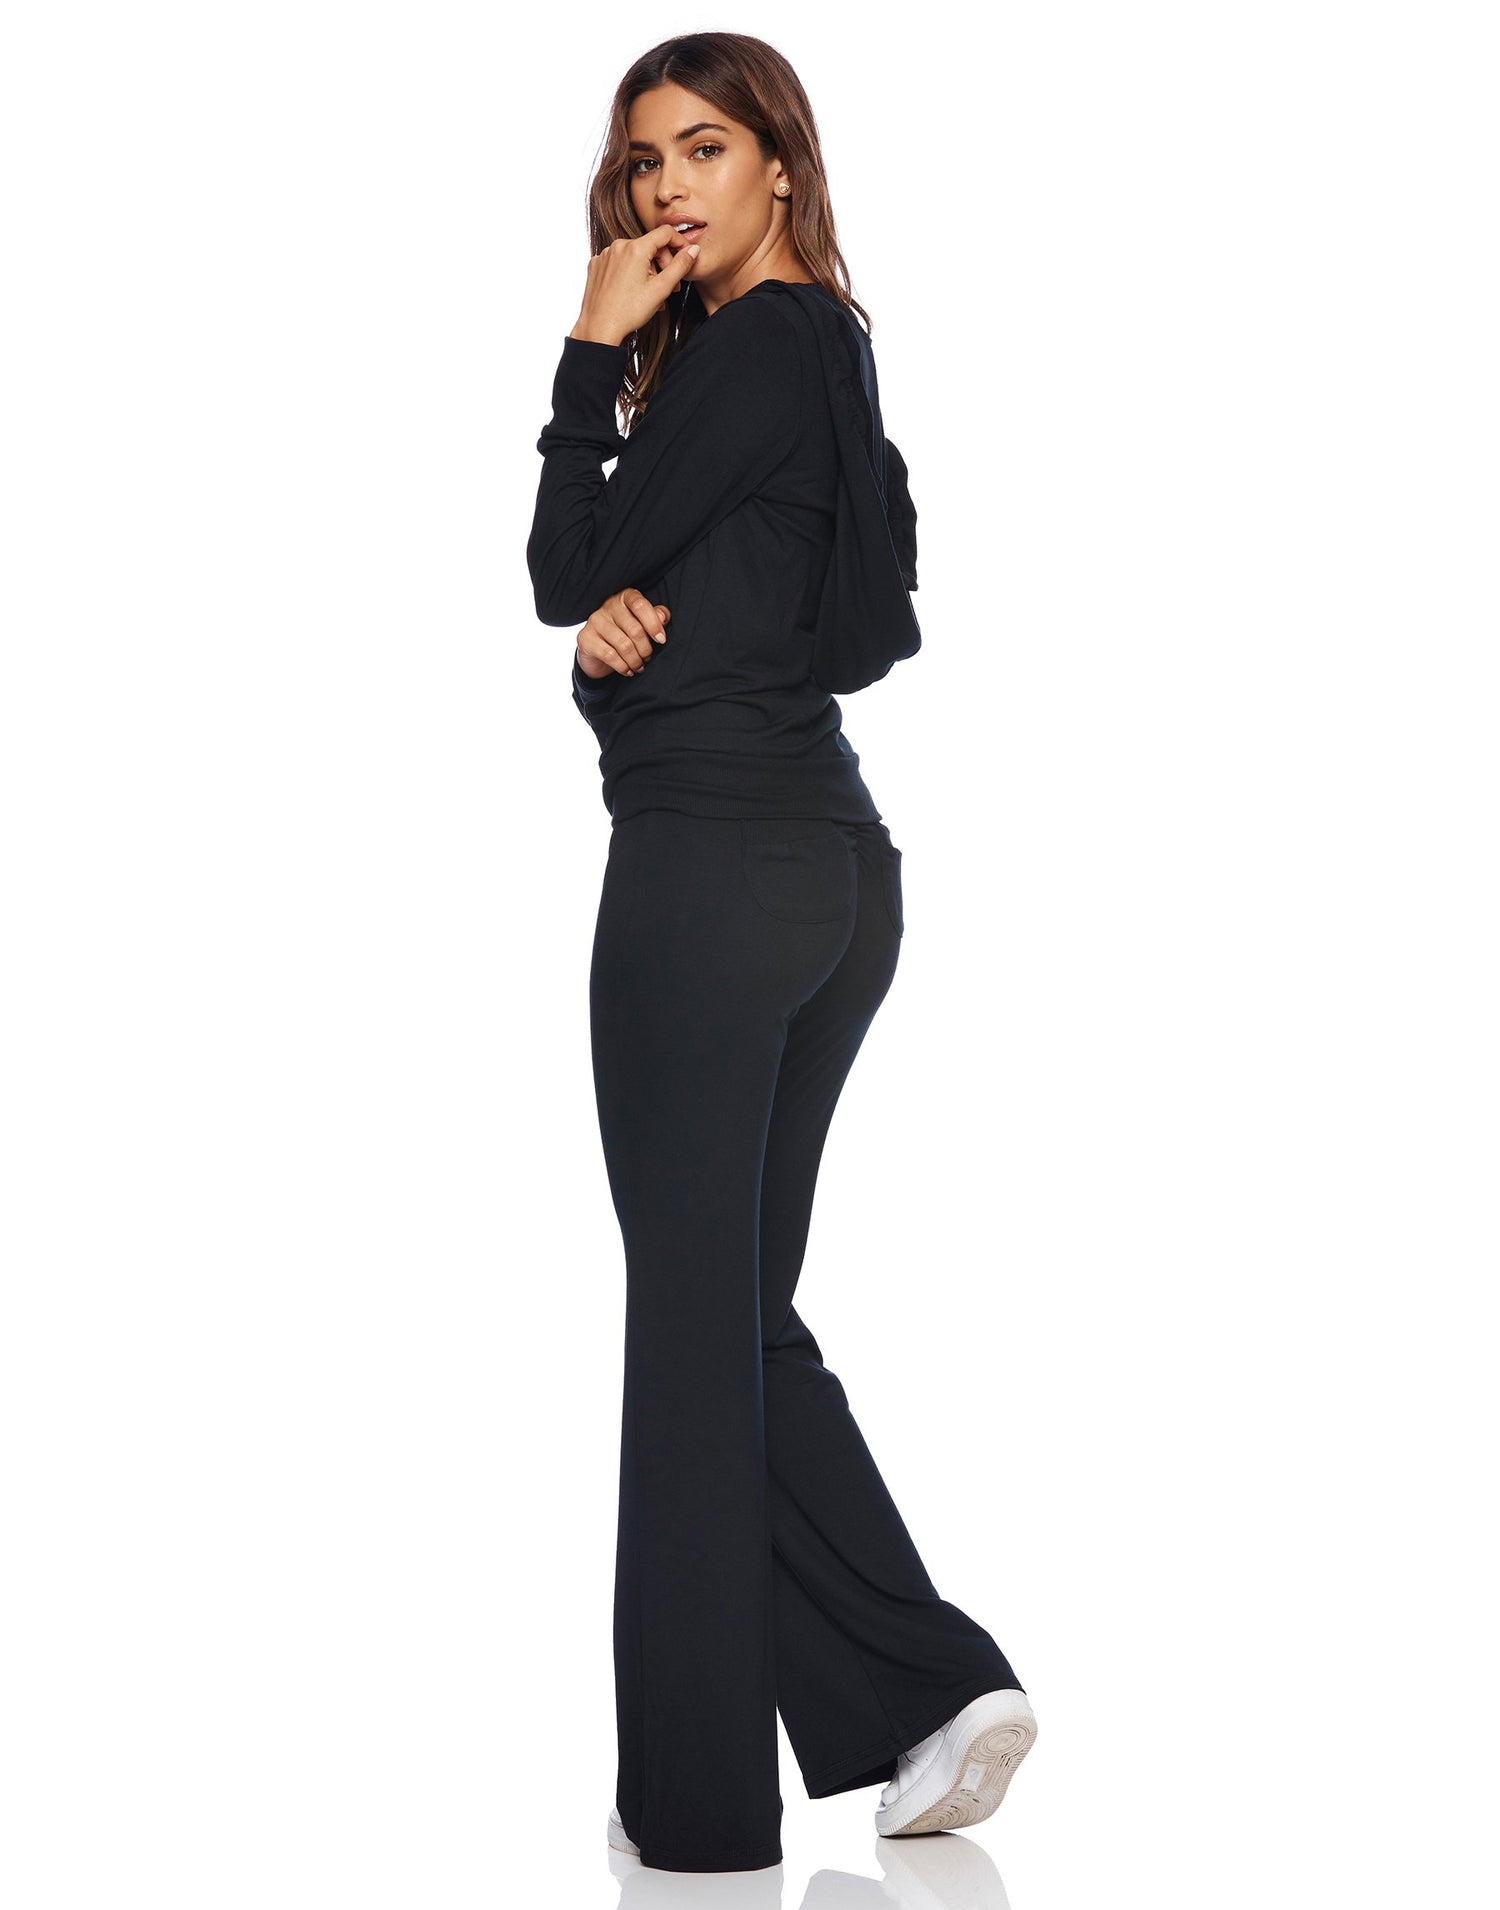 Maggie Pant in Black - side view